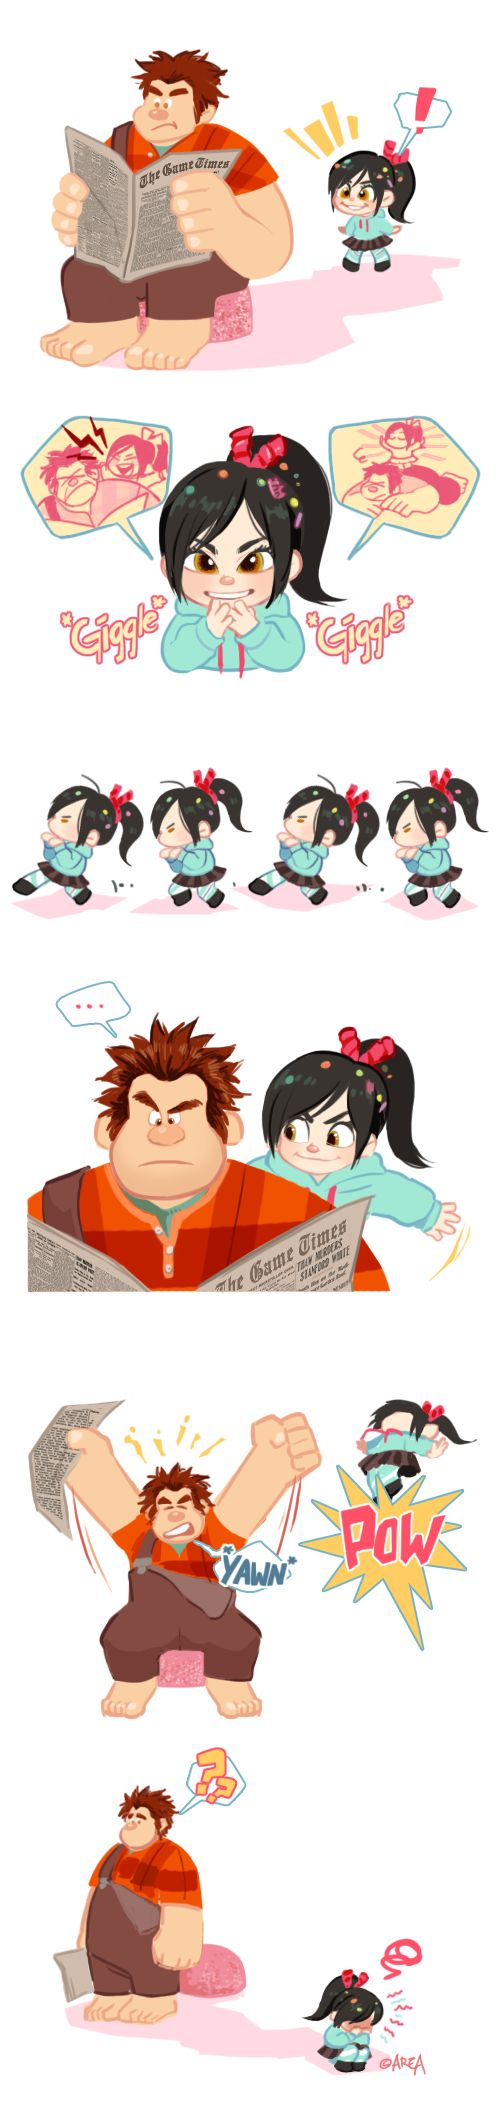 Wreck-It Ralph : FAIL! by area32.deviantart.com on @deviantART